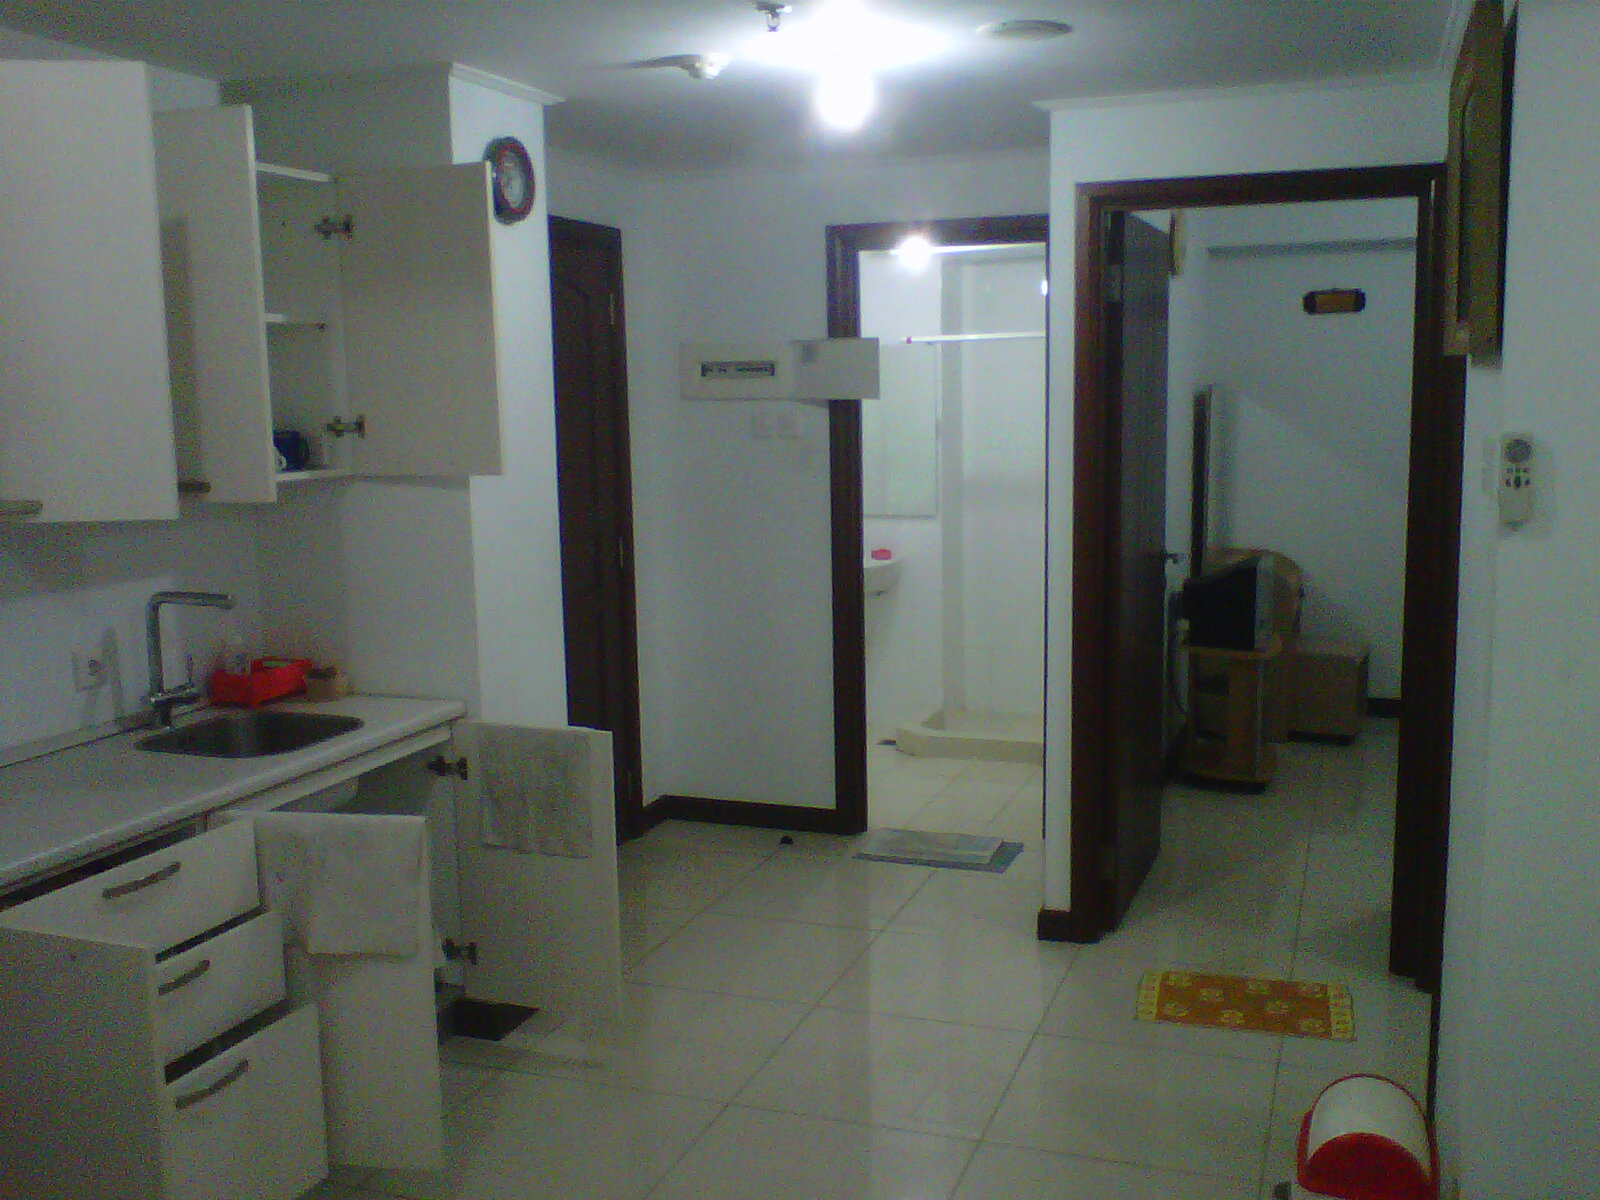 Comfy and fully furnished apartment located in west surabaya water place apartment are strategic located near ptc pakuwon trade center and supermall